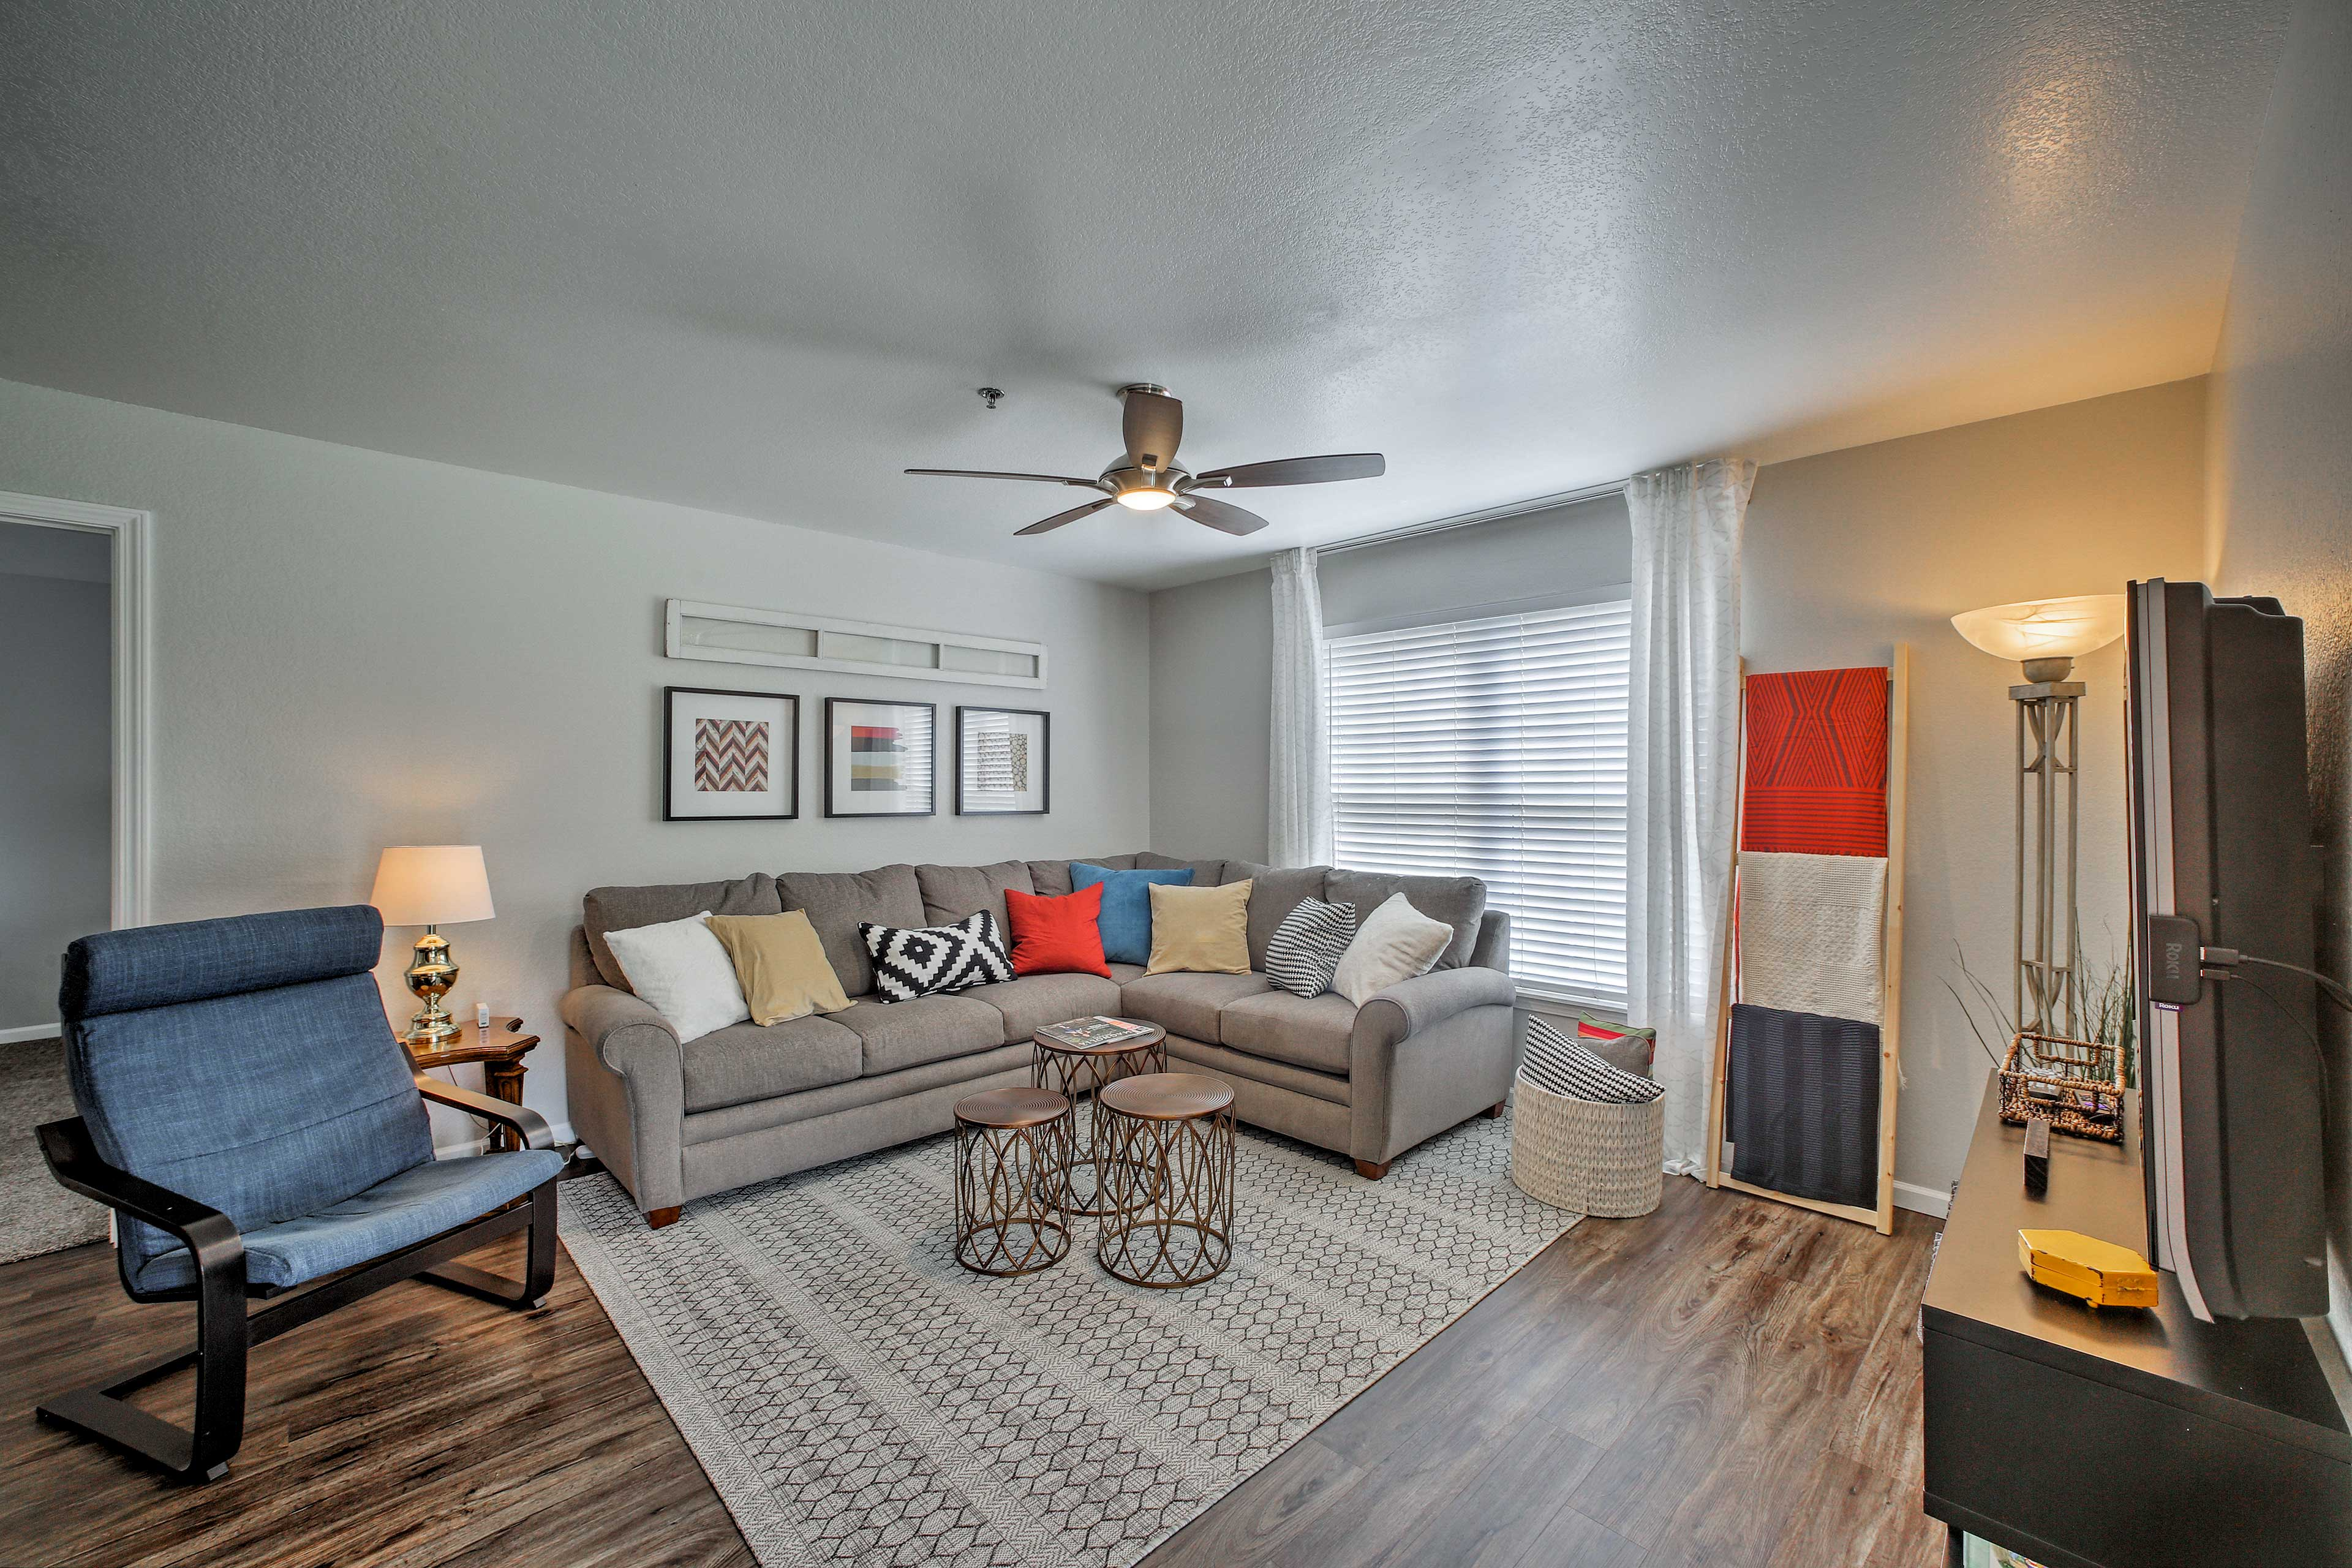 All the comforts of home are available in this contemporary condo!